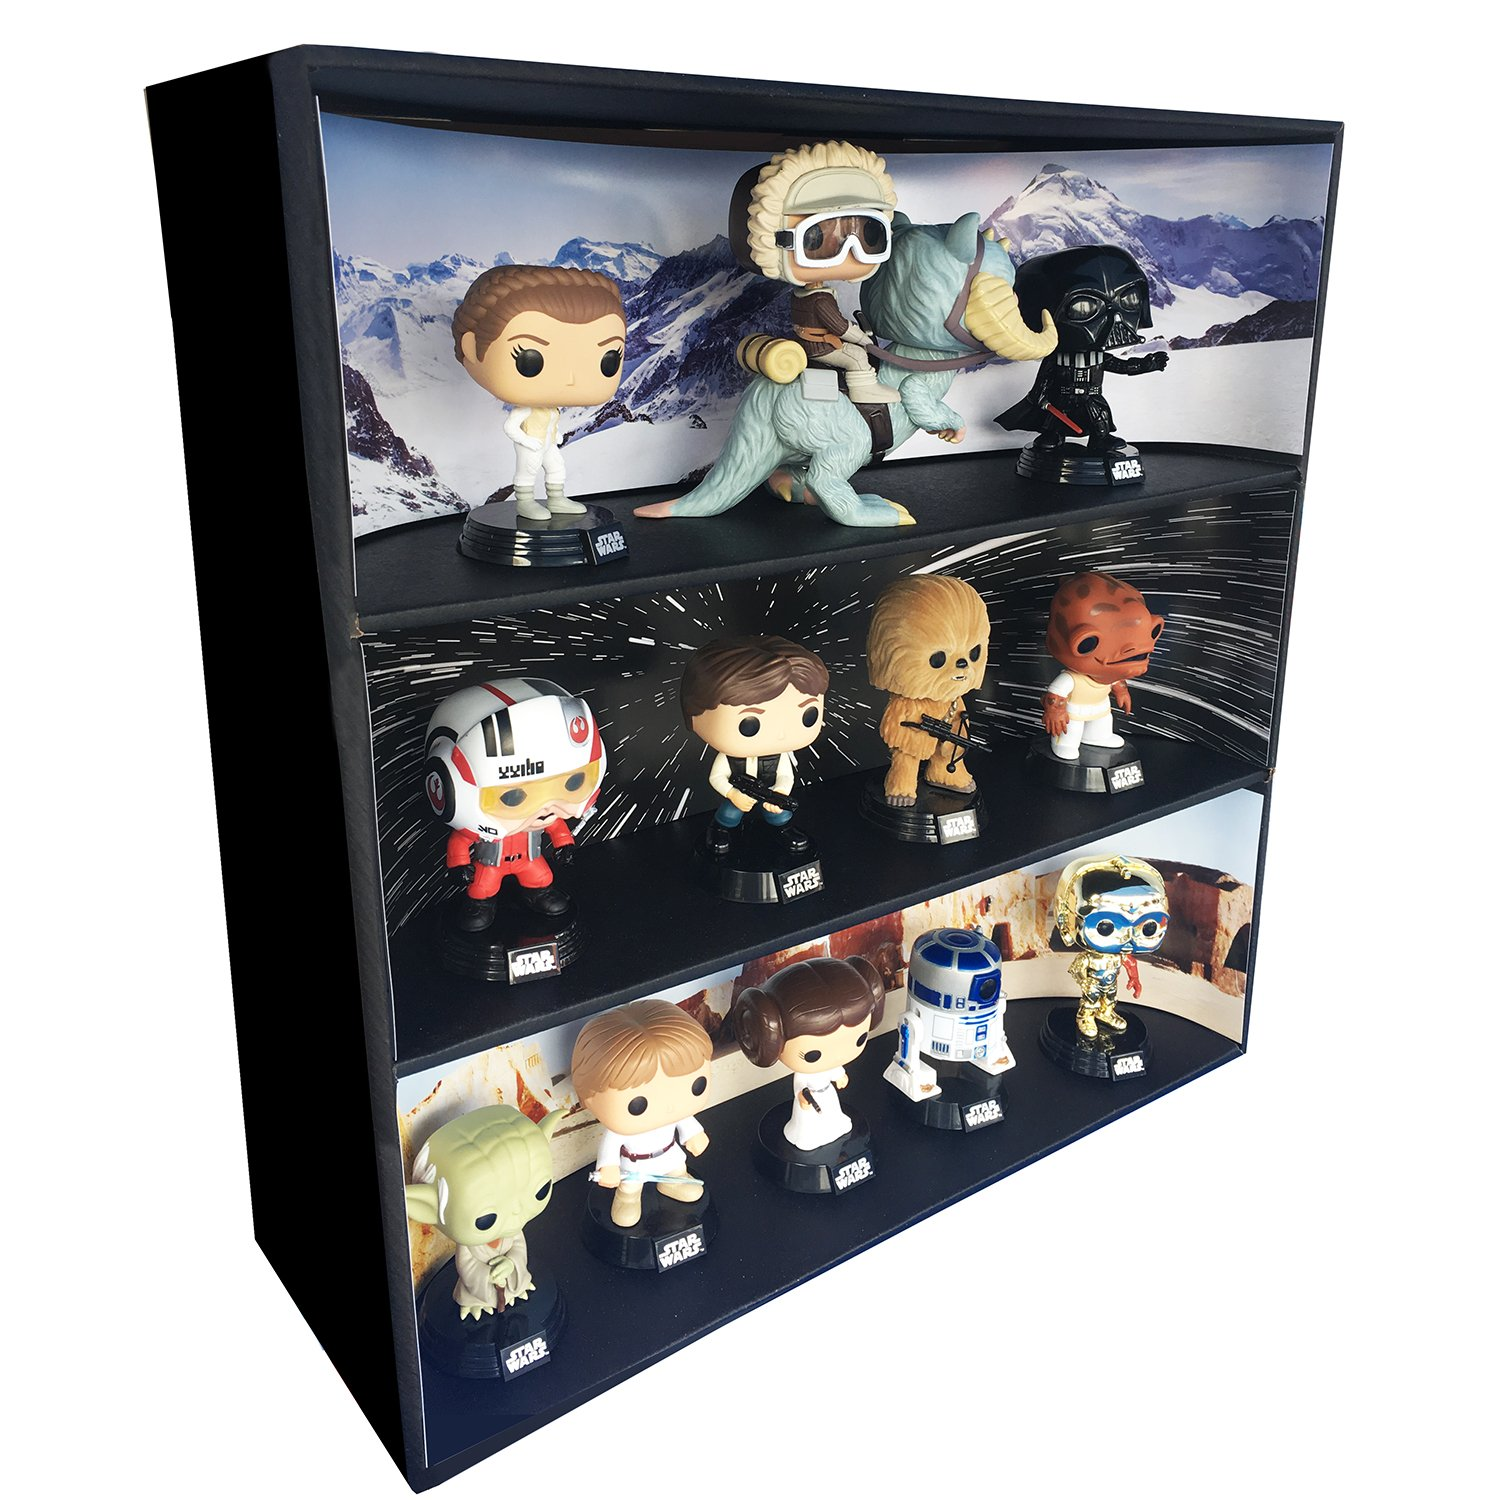 1 Display Geek Exclusive Stackable Toy Shelf for 4 in. Funko Pops with 3 backdrop inserts, Black Corrugated Cardboard